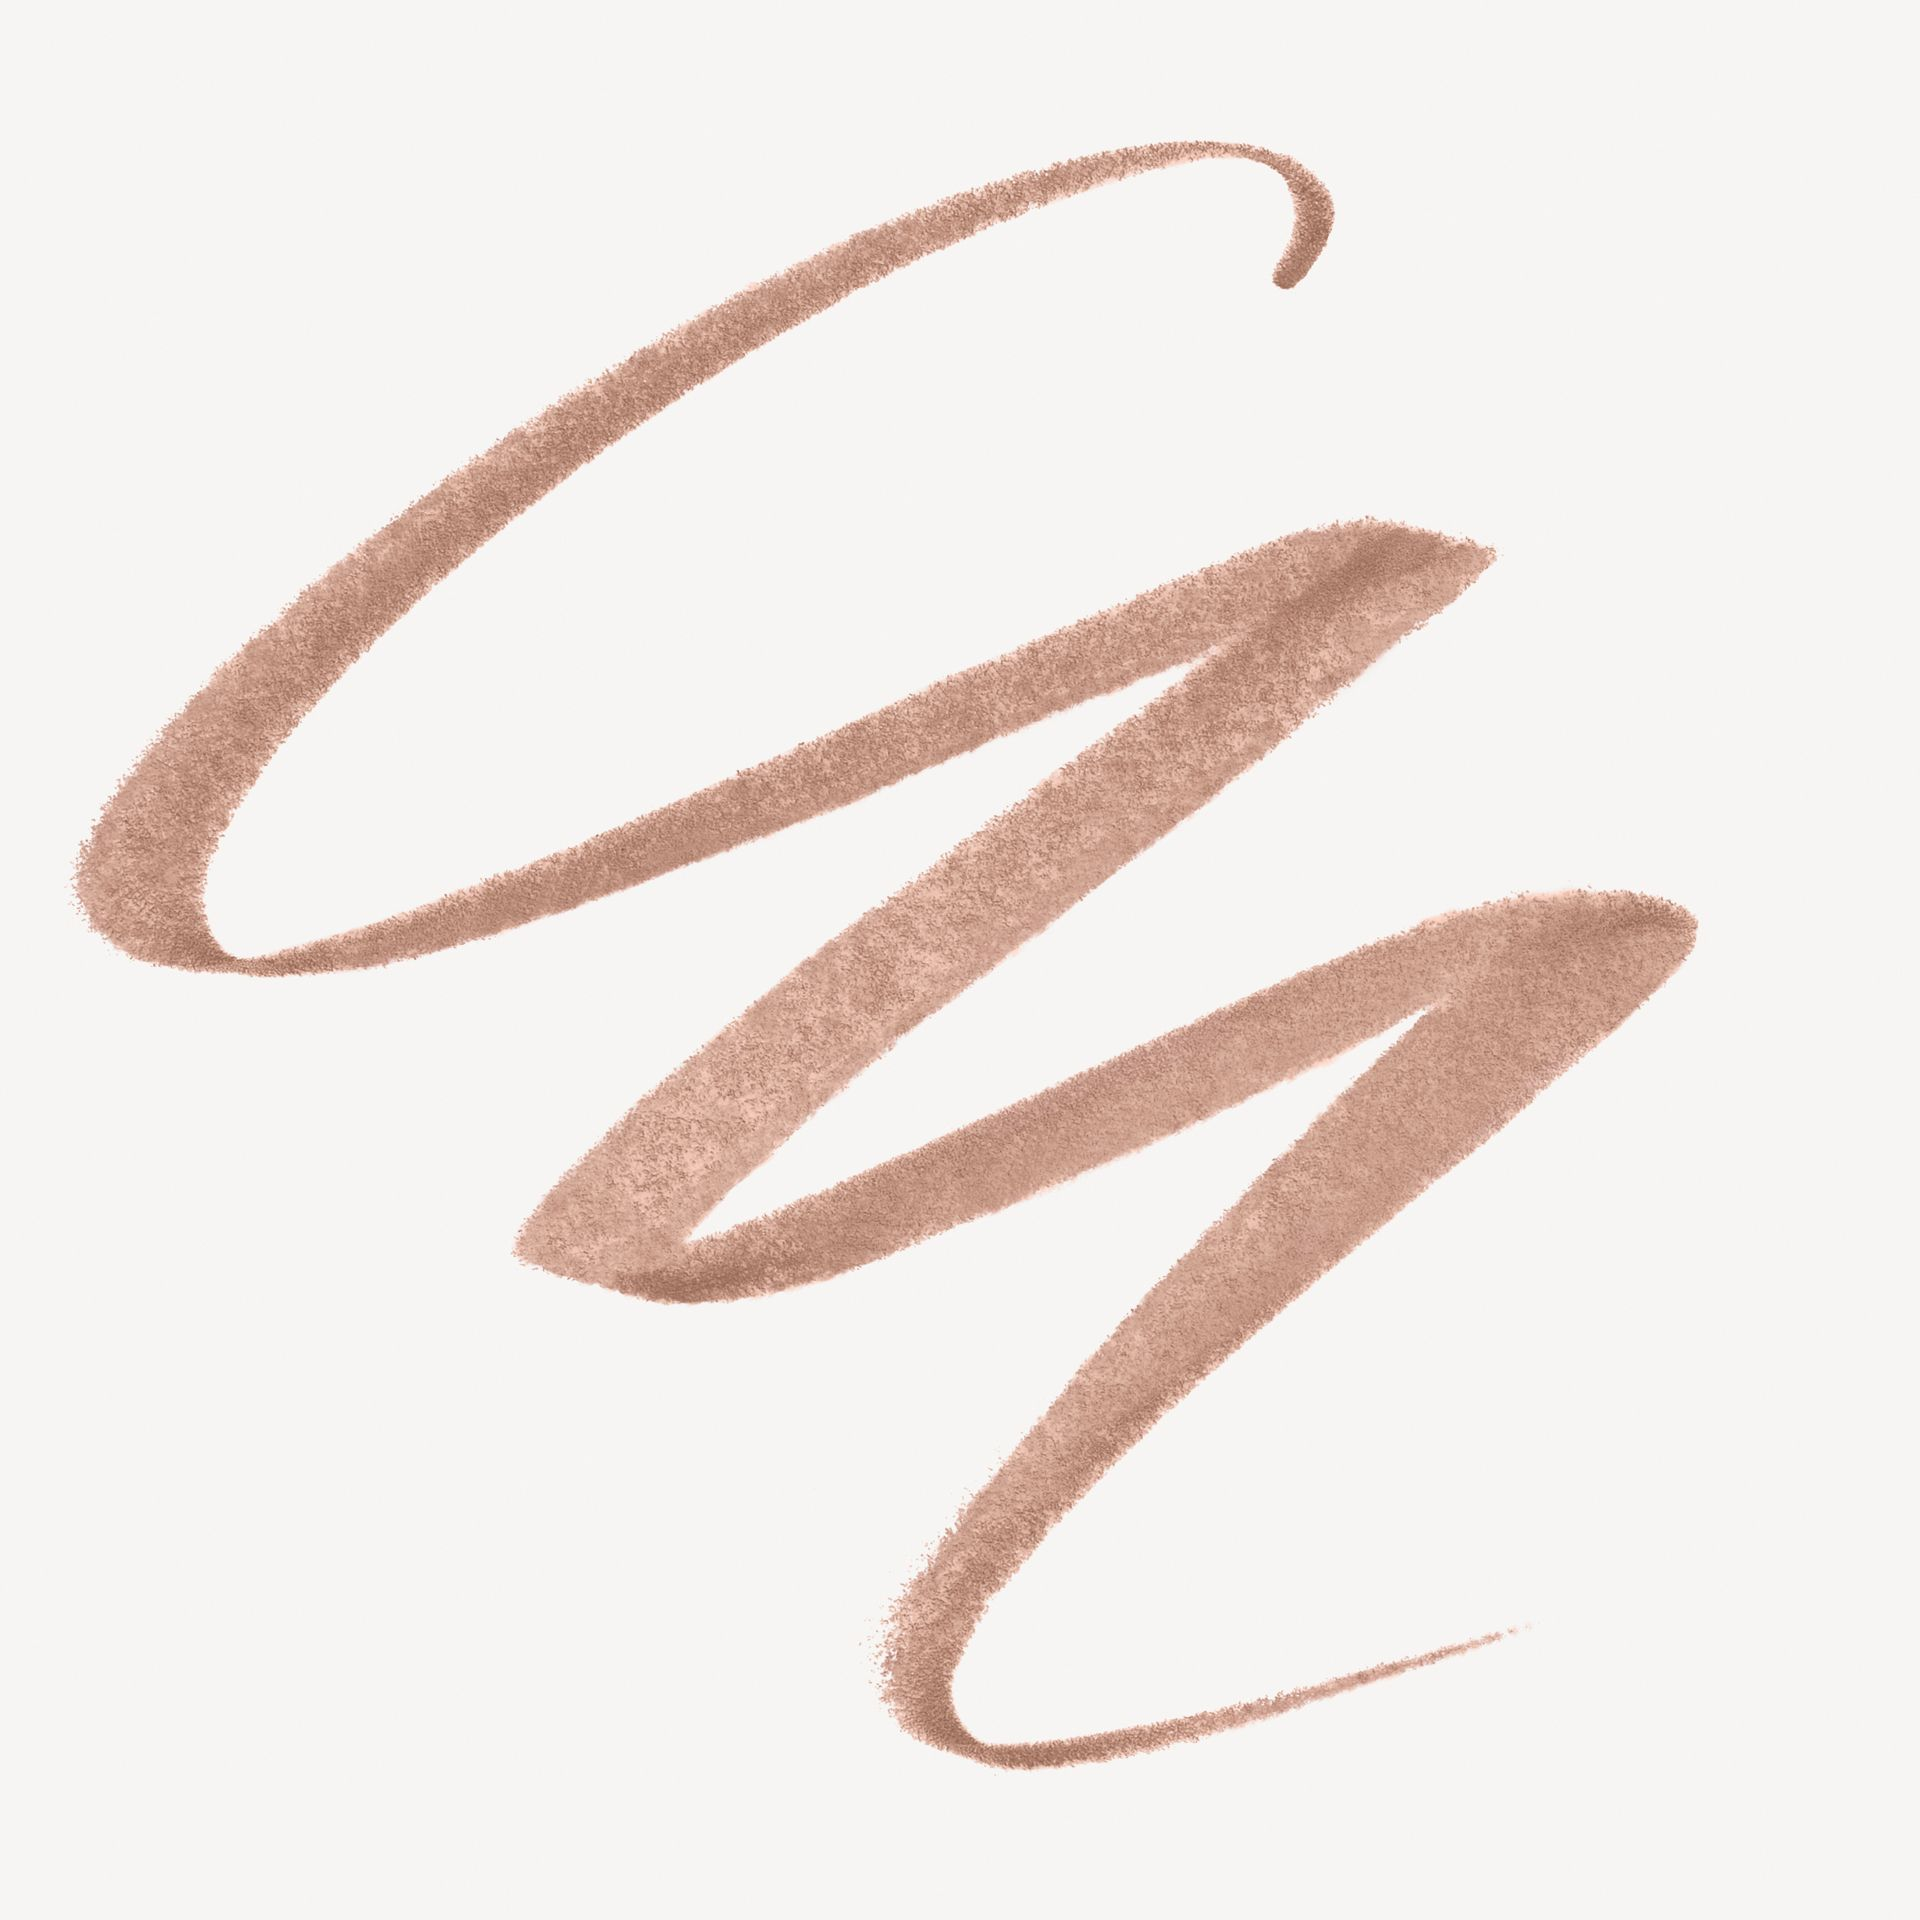 Effortless Eyebrow Definer – Malt Brown No.04 - galeria de imagens 2